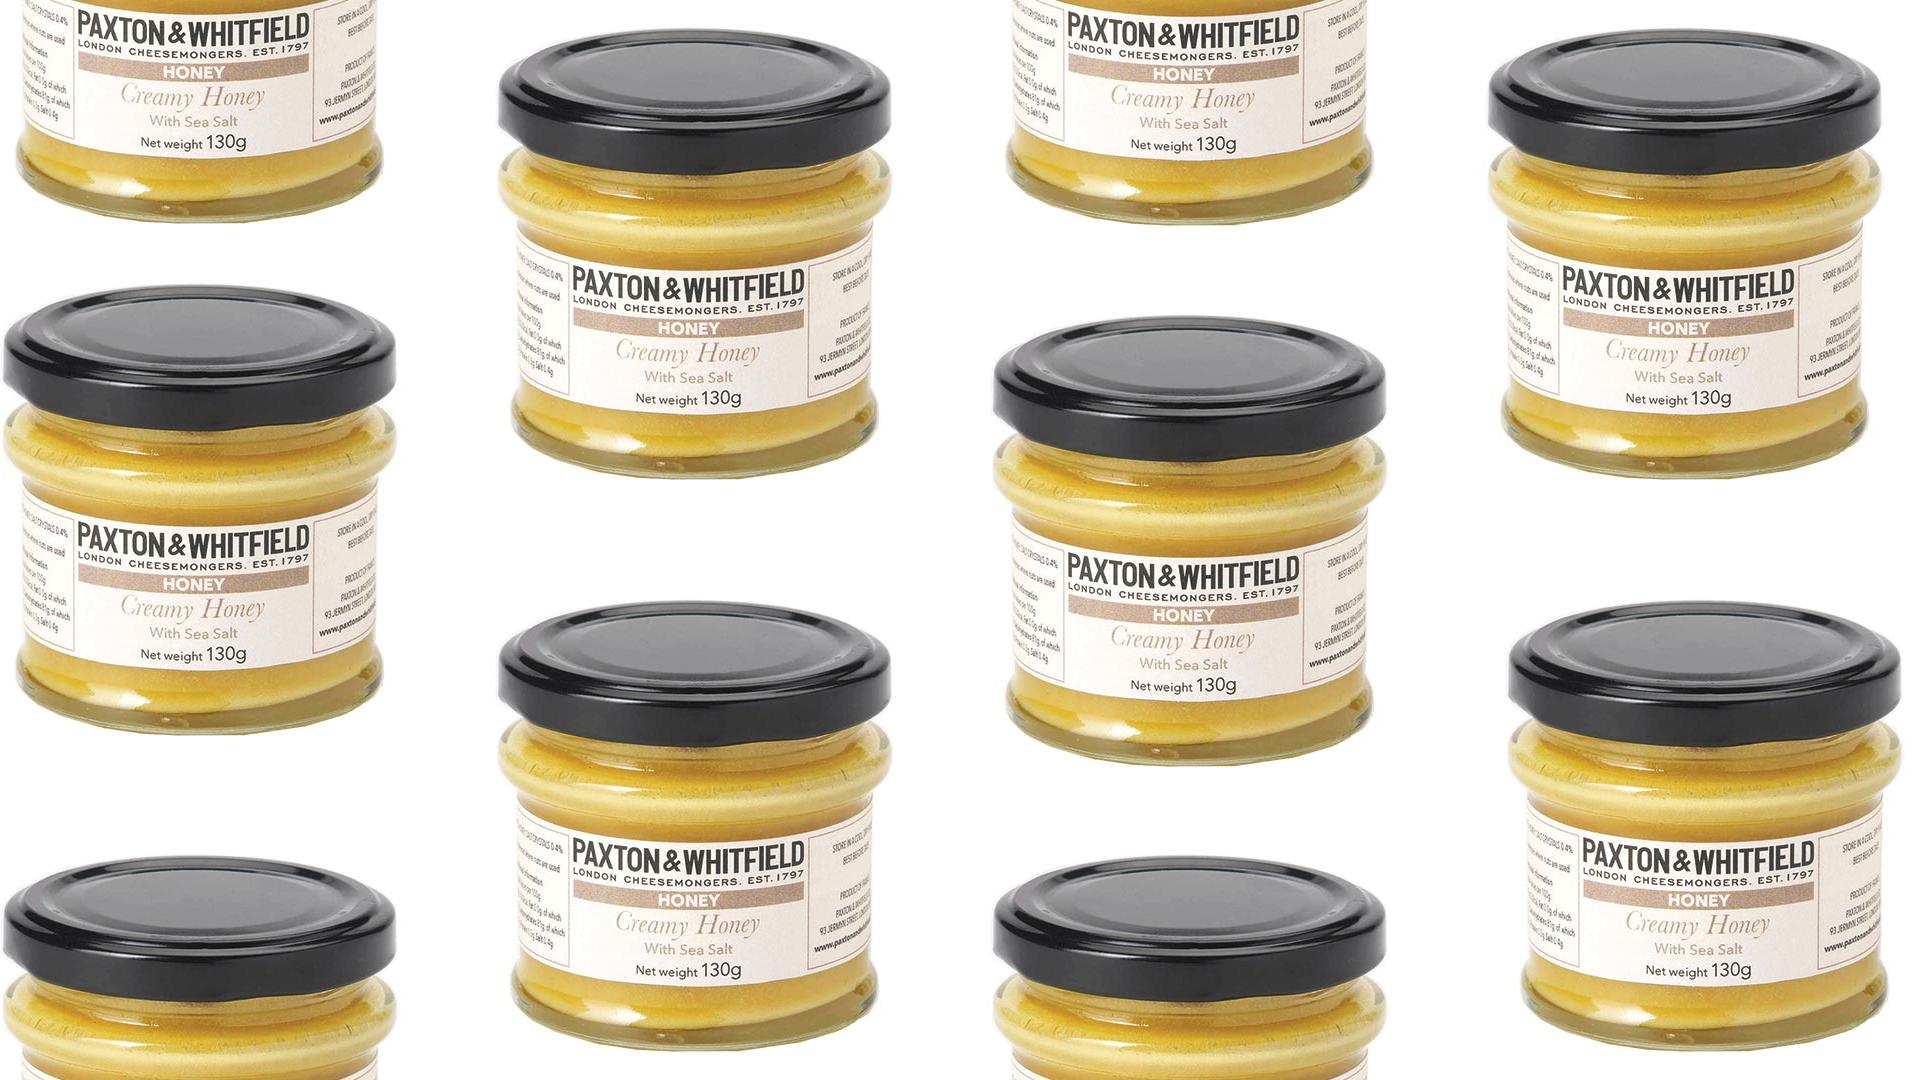 Paxton & Whitfield creamed honey with sea salt